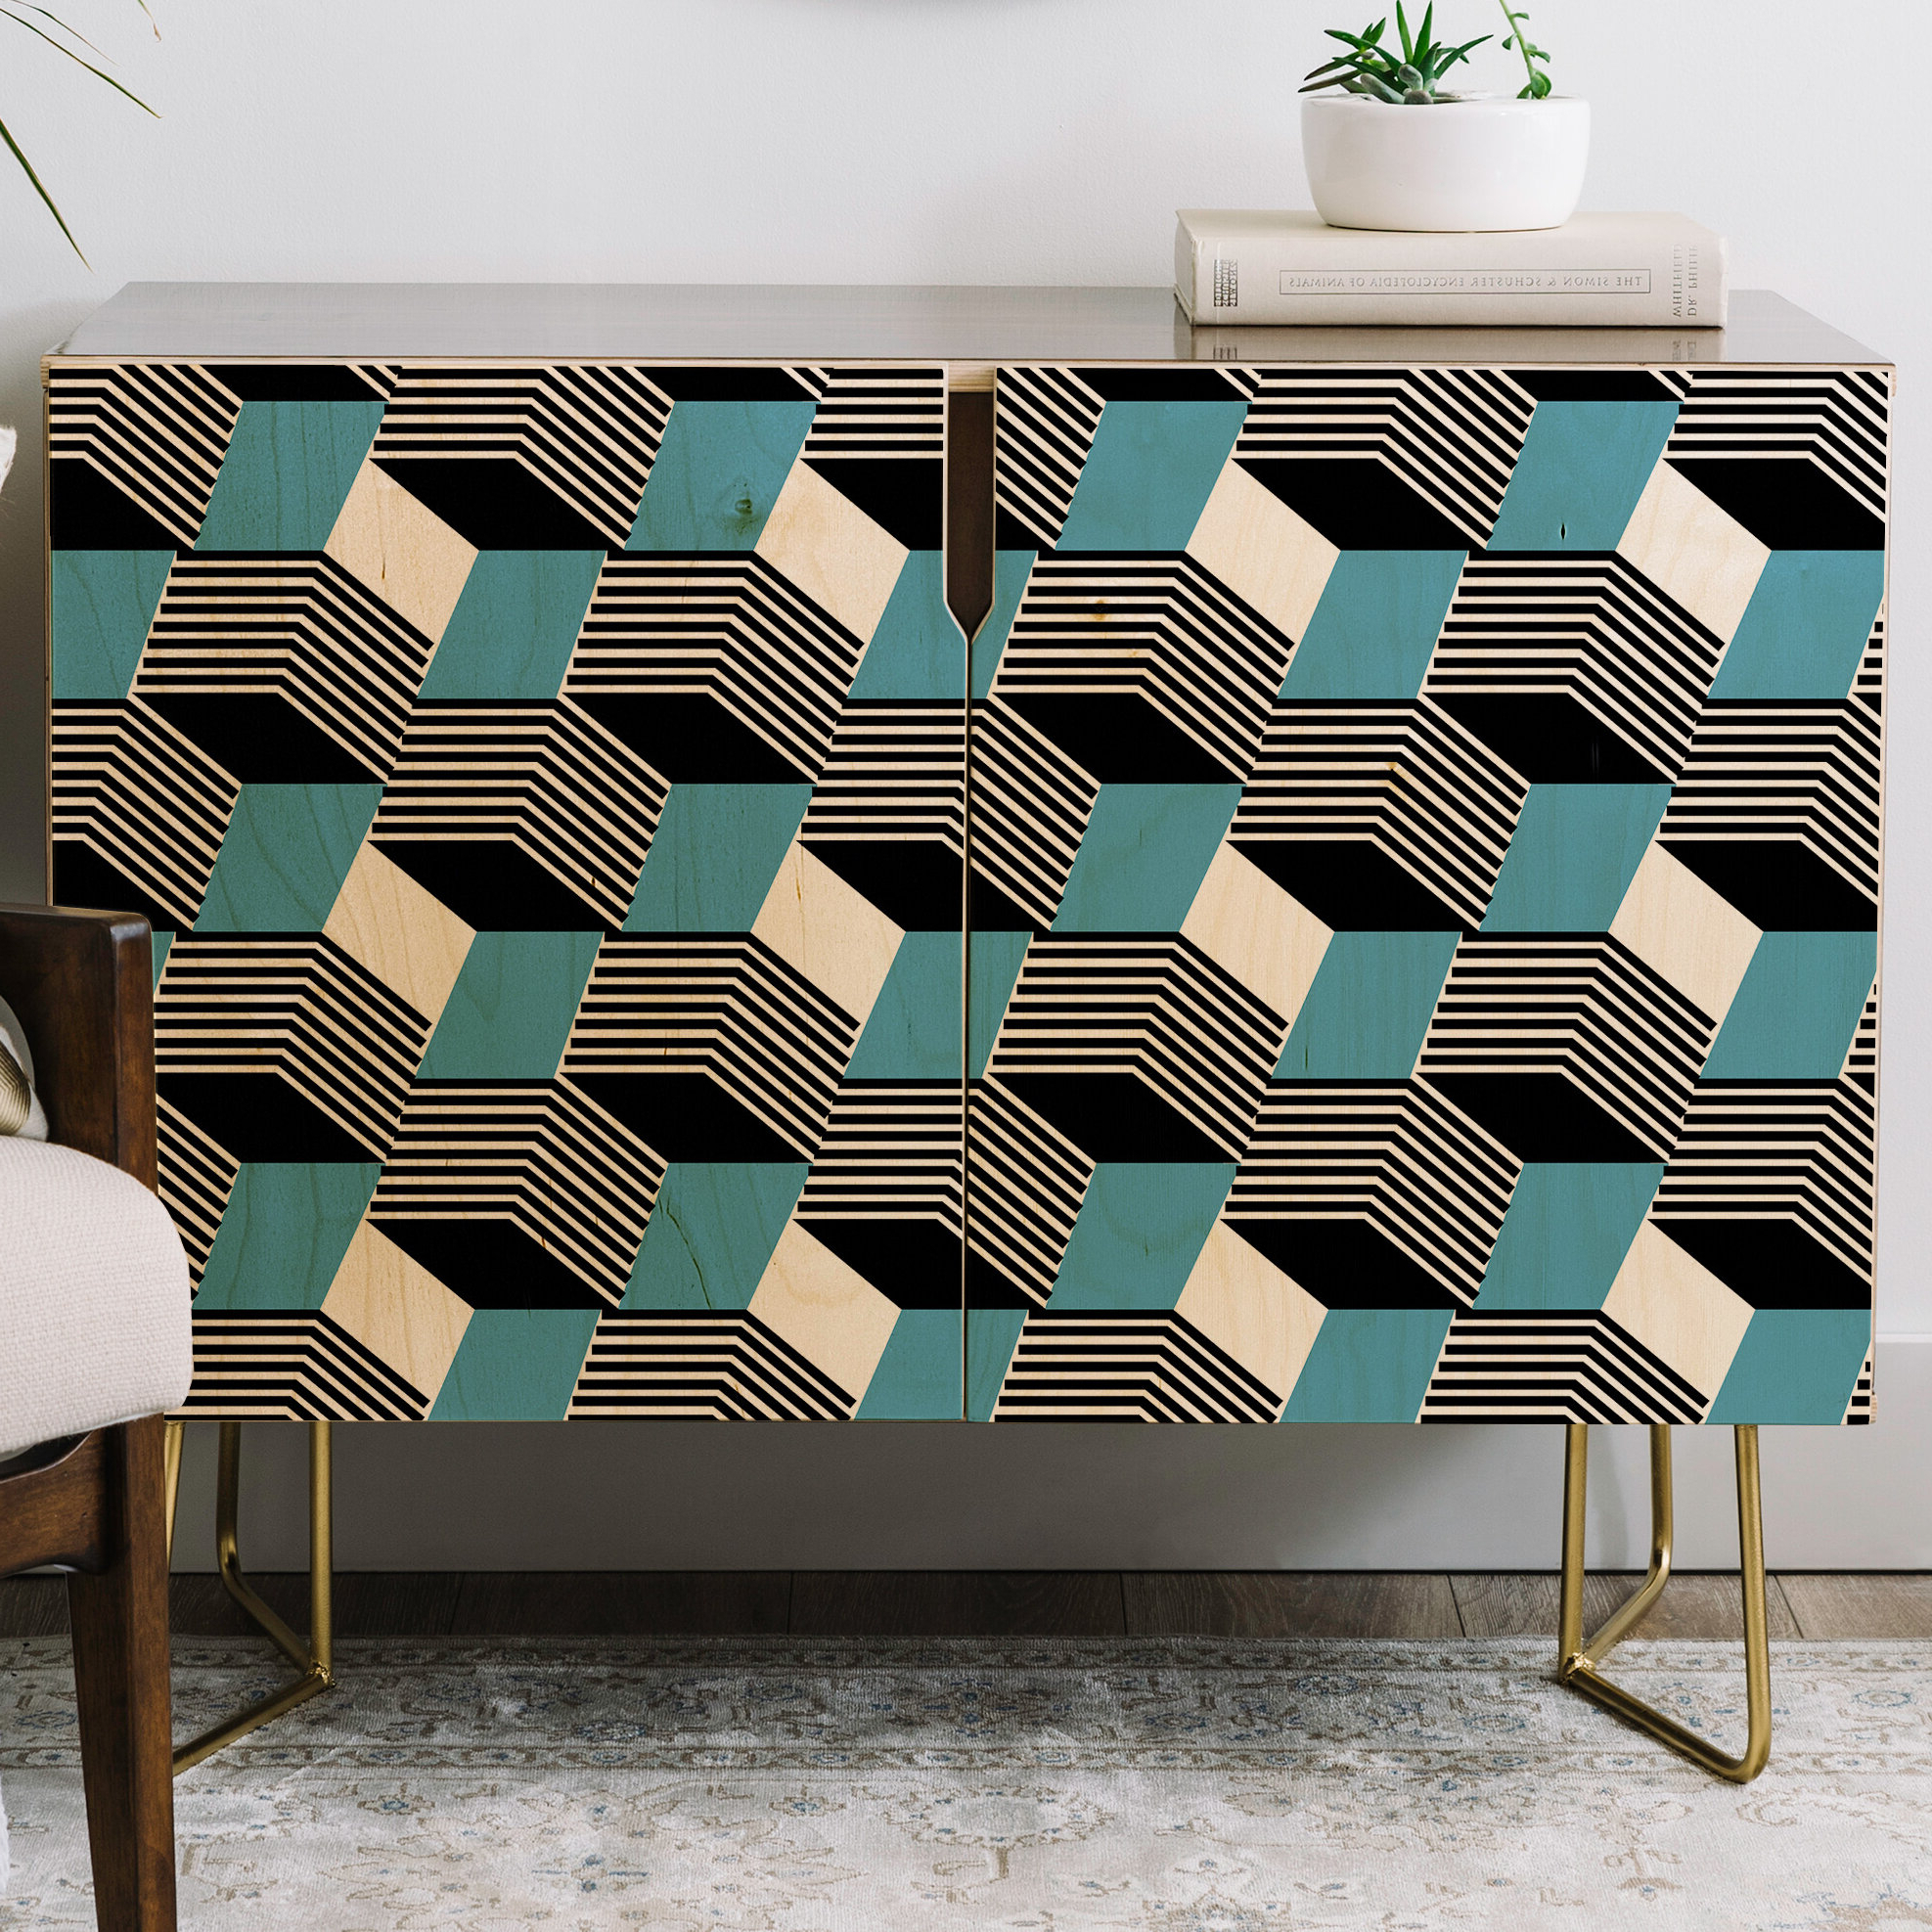 Gabriela Fuente Cube Play Credenza Intended For Emerald Cubes Credenzas (View 6 of 20)